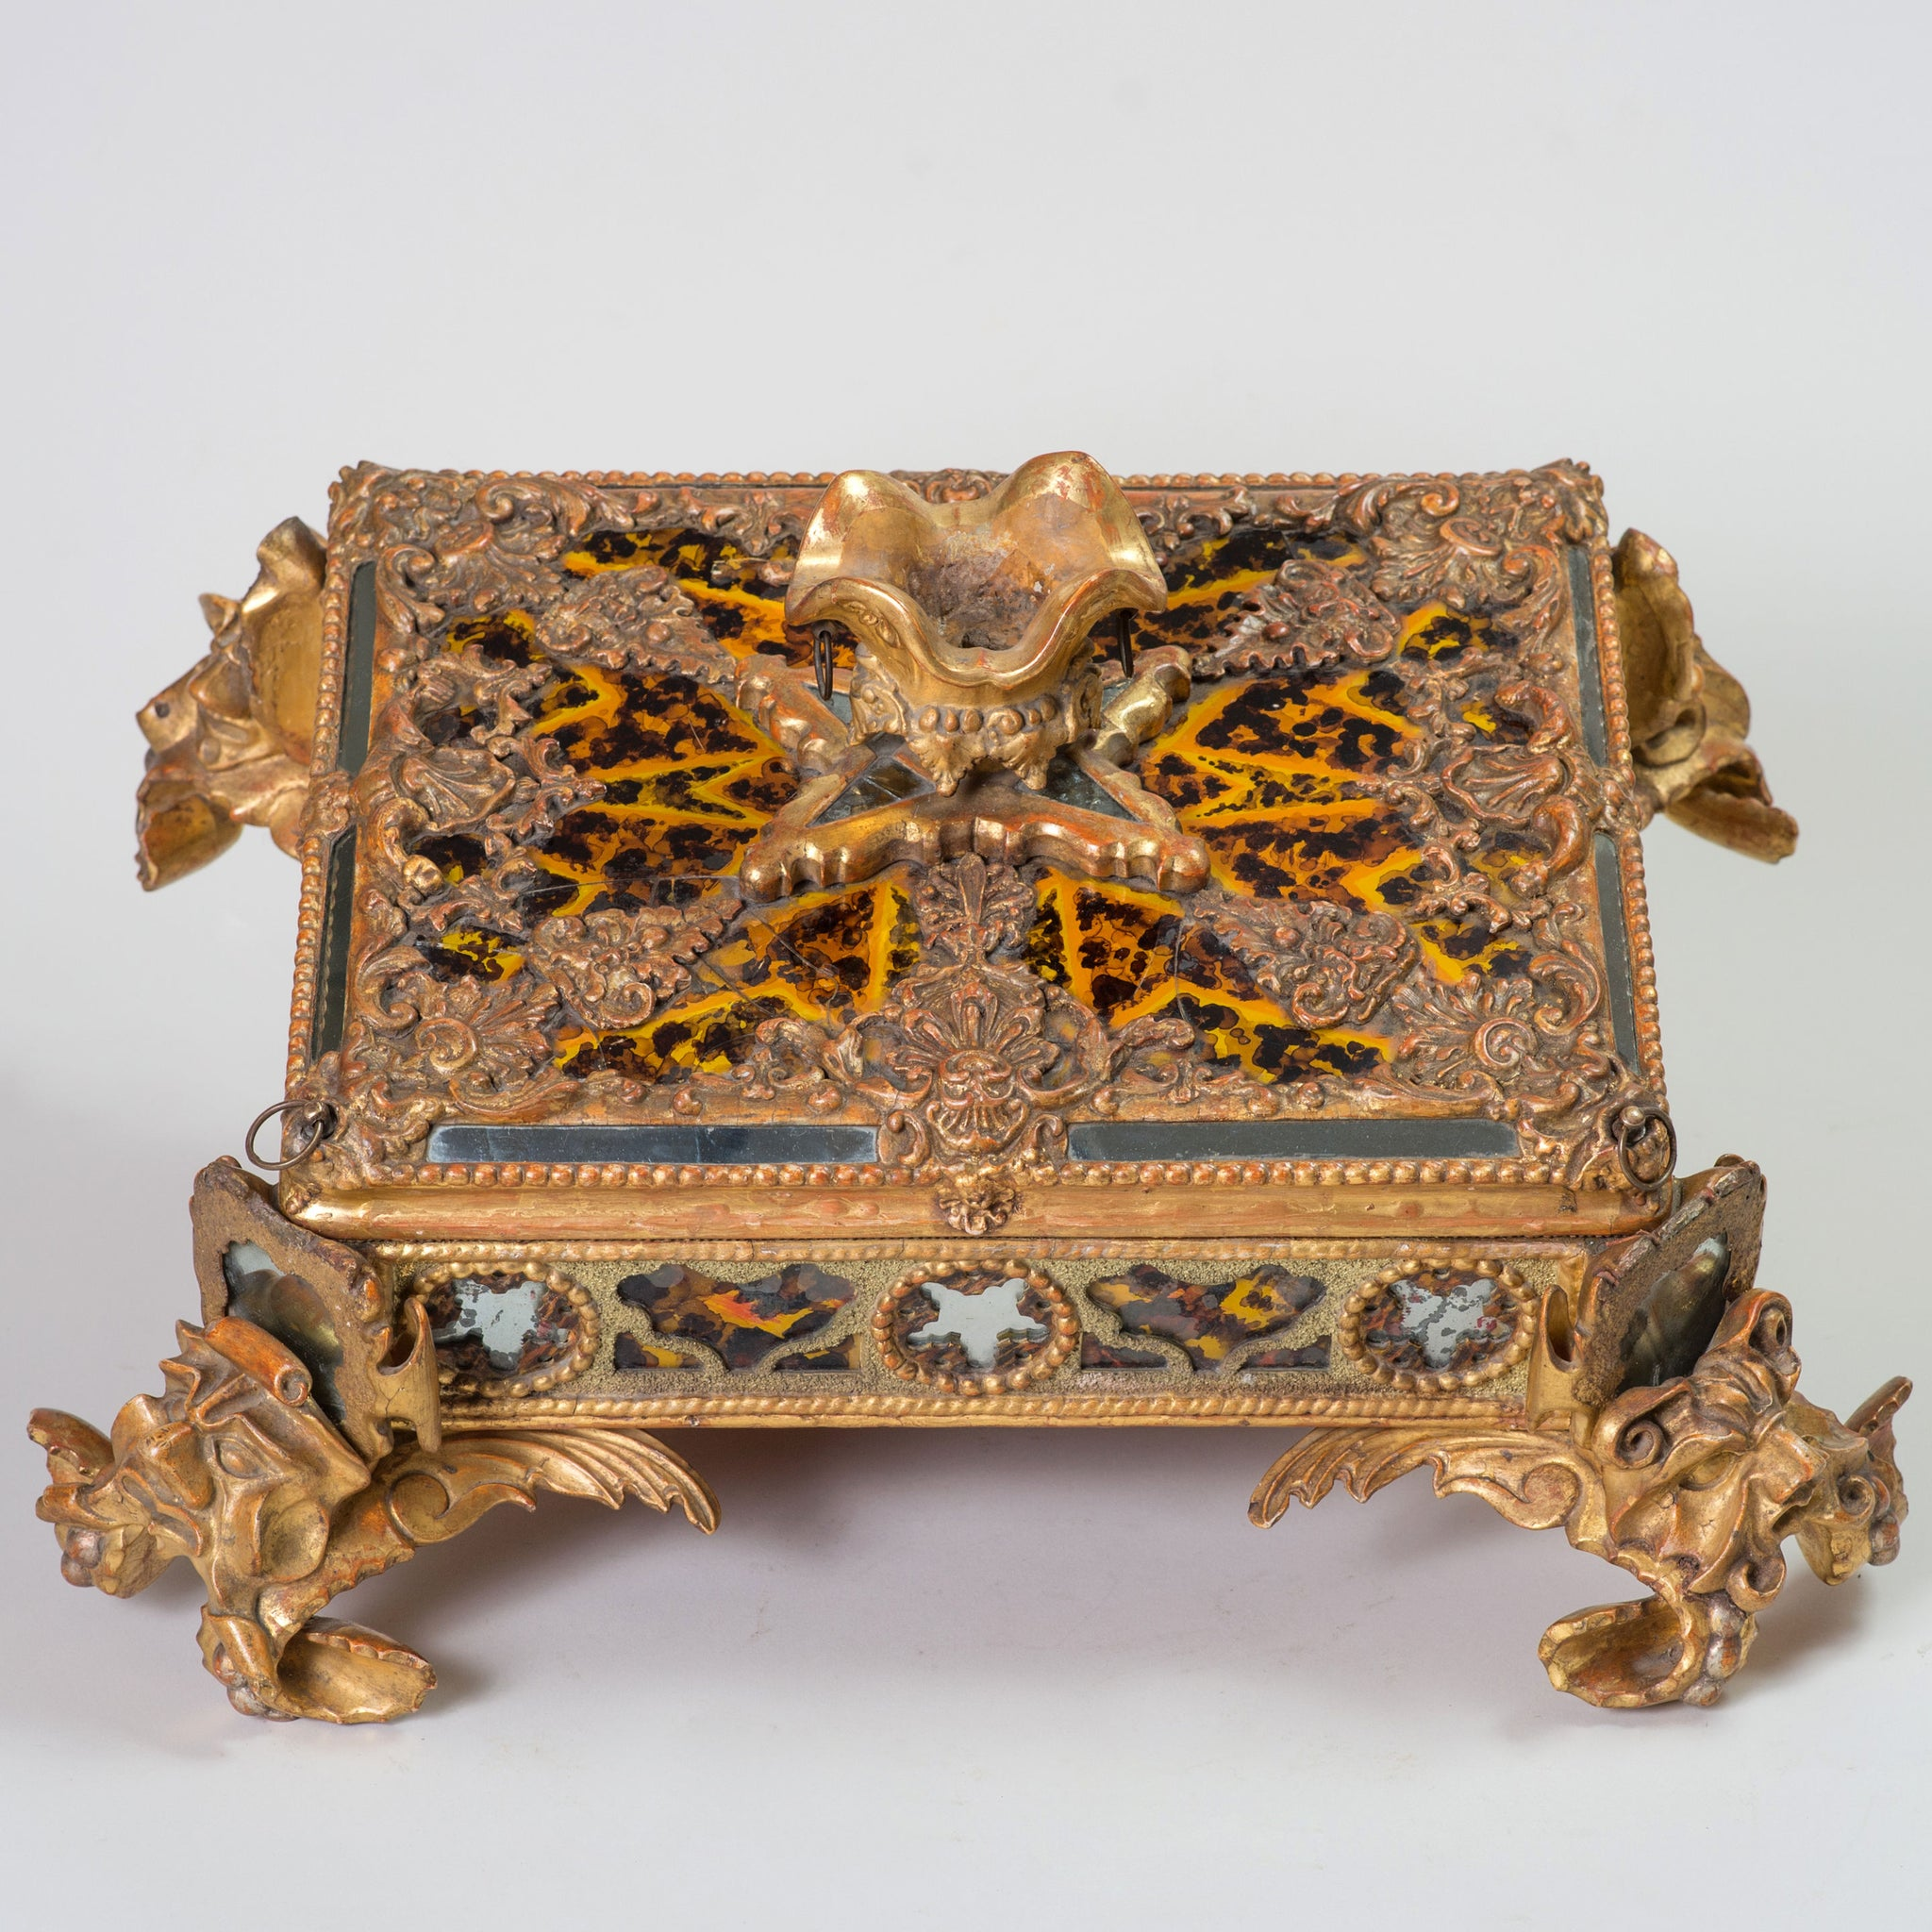 Carved Giltwood, Verre Eglomise, Pastiglia and Crushed Stone Casket